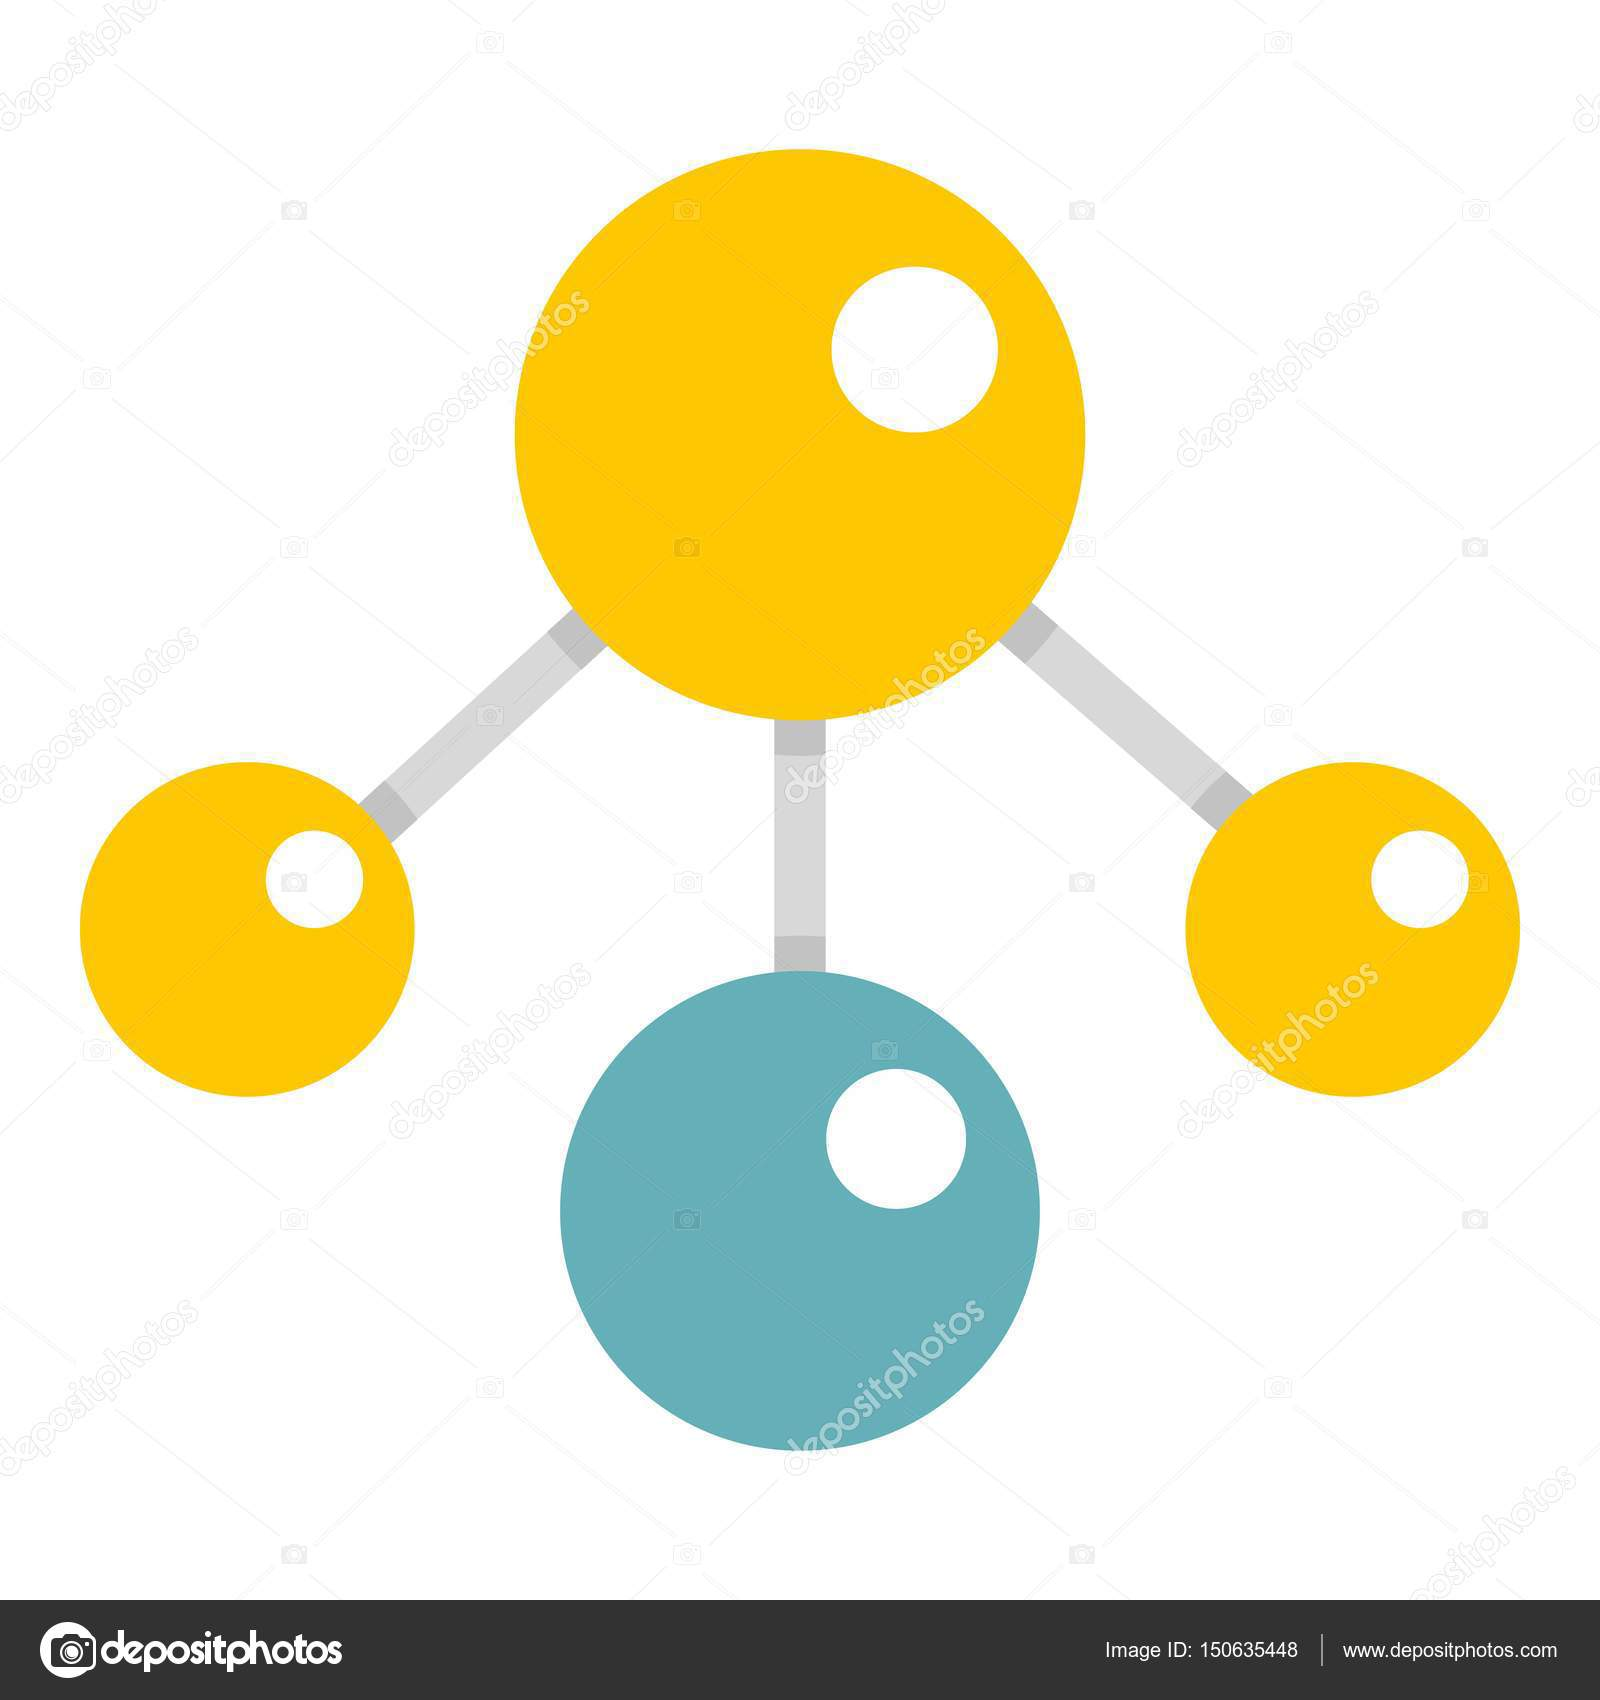 Yelllow and blue atomic structure icon isolated stock vector yelllow and blue atomic structure icon isolated stock vector ccuart Images